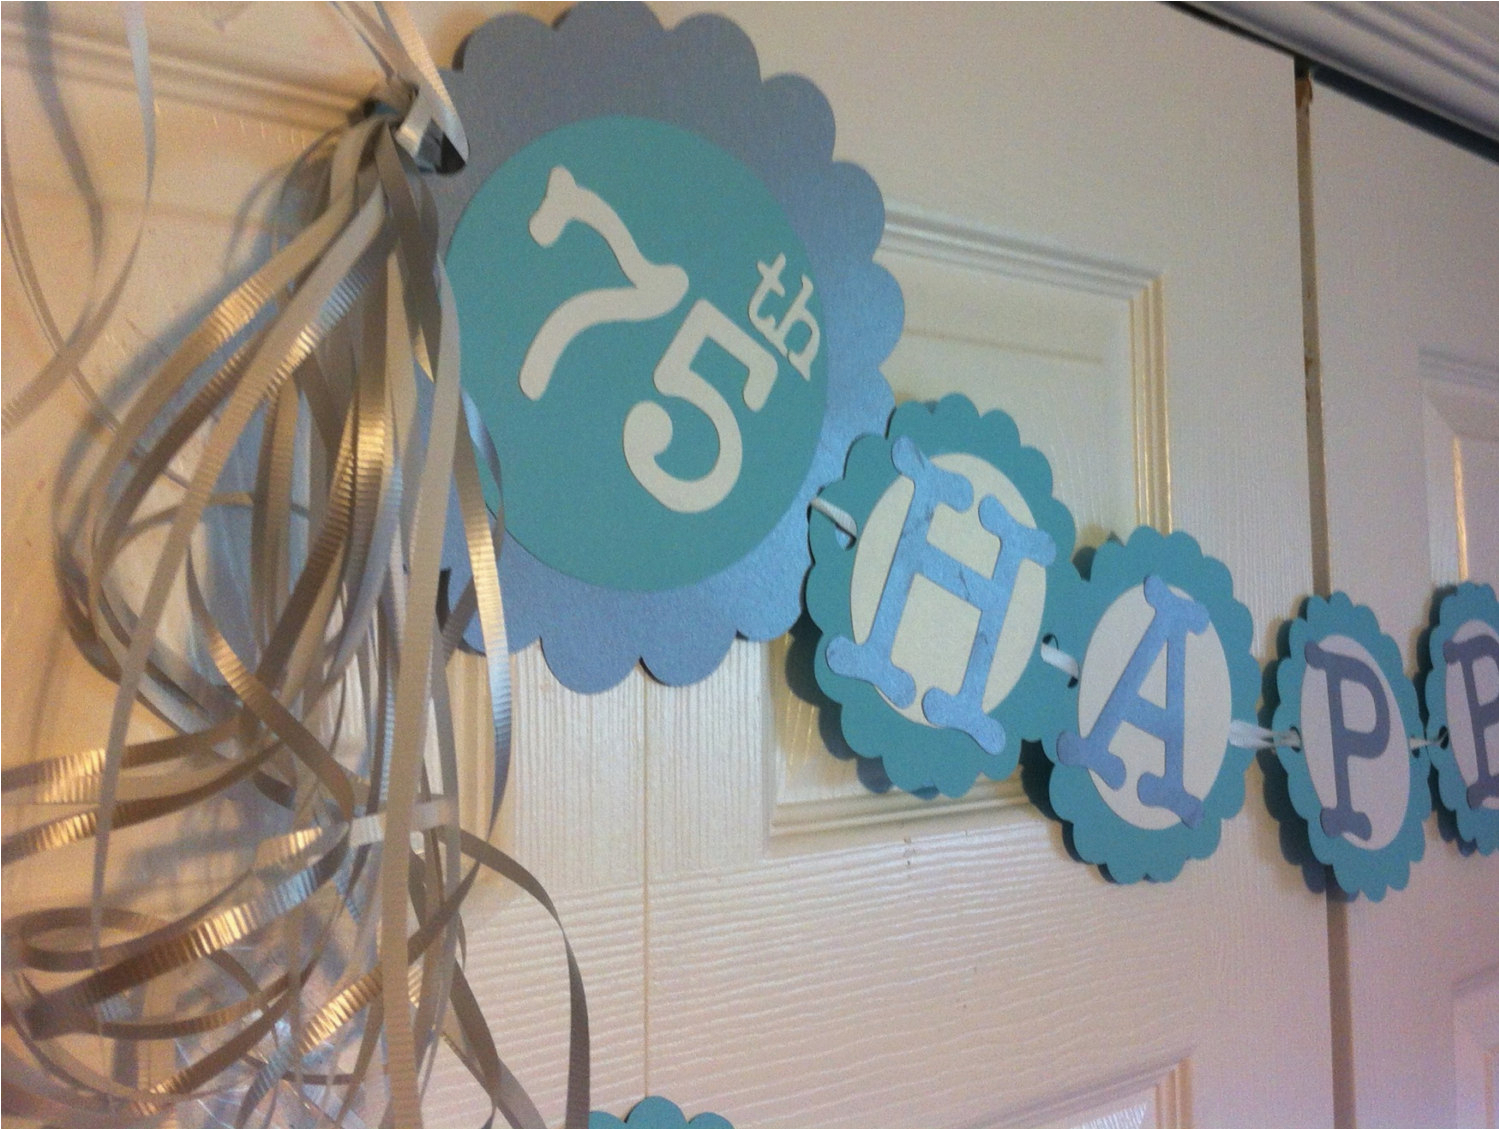 75 Birthday Party Decorations 75th Birthday Decorations Personalization Available